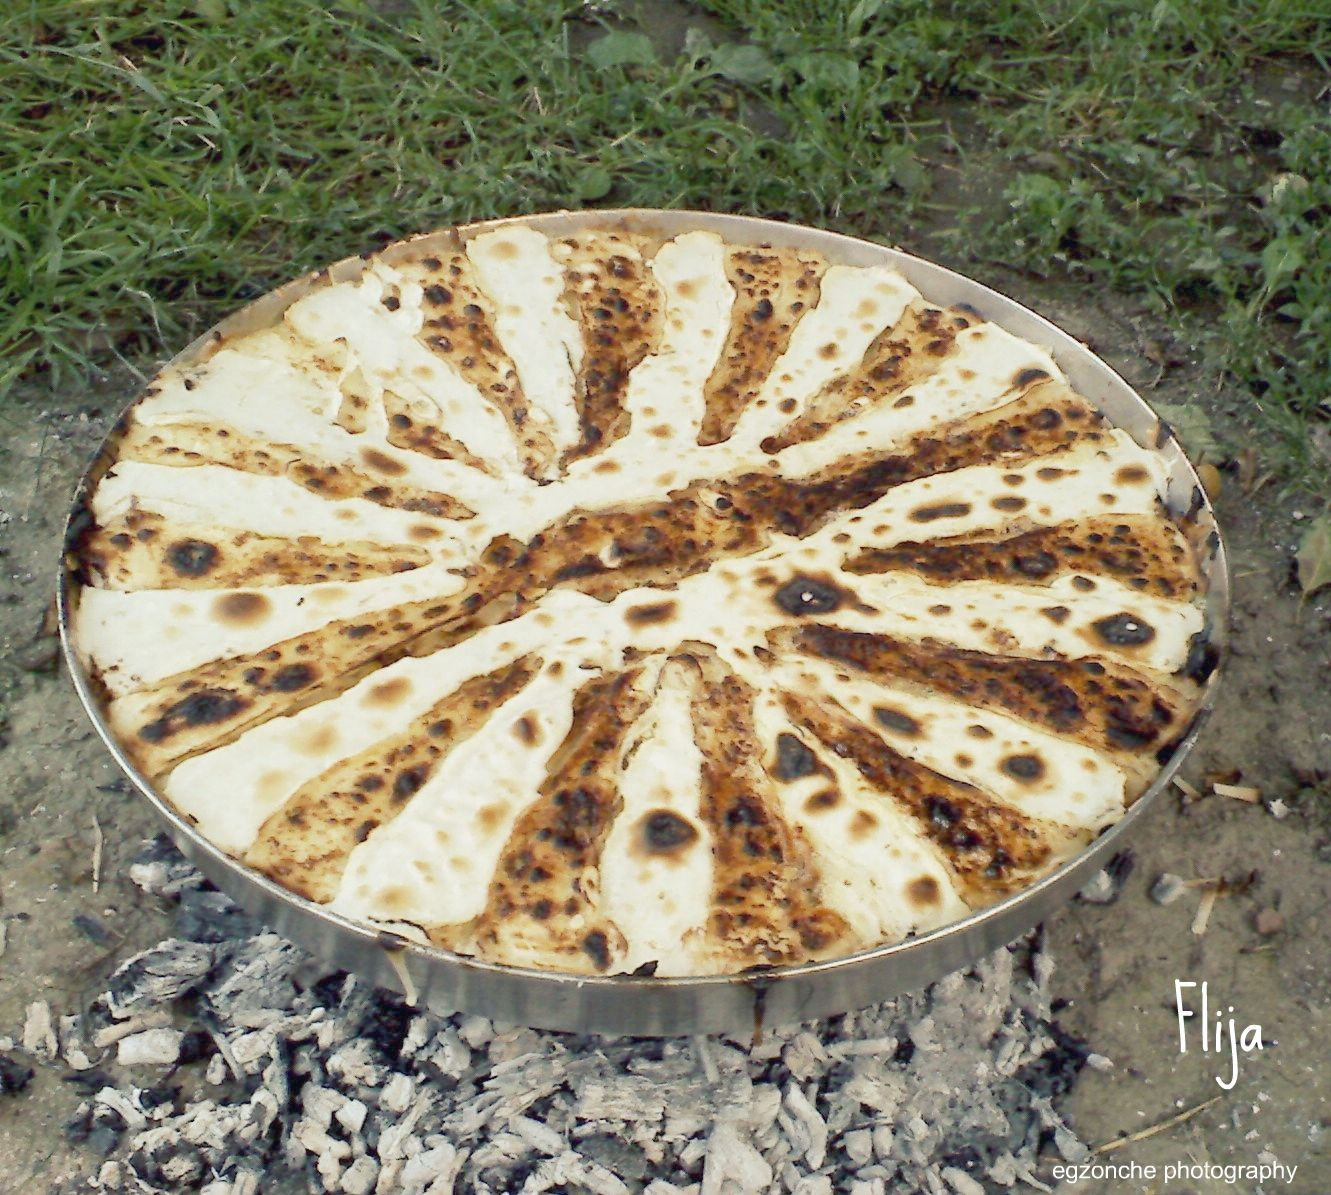 Traditional albanian food fli yummy in my tummy for Albanian cuisine kuzhina shqiptare photos